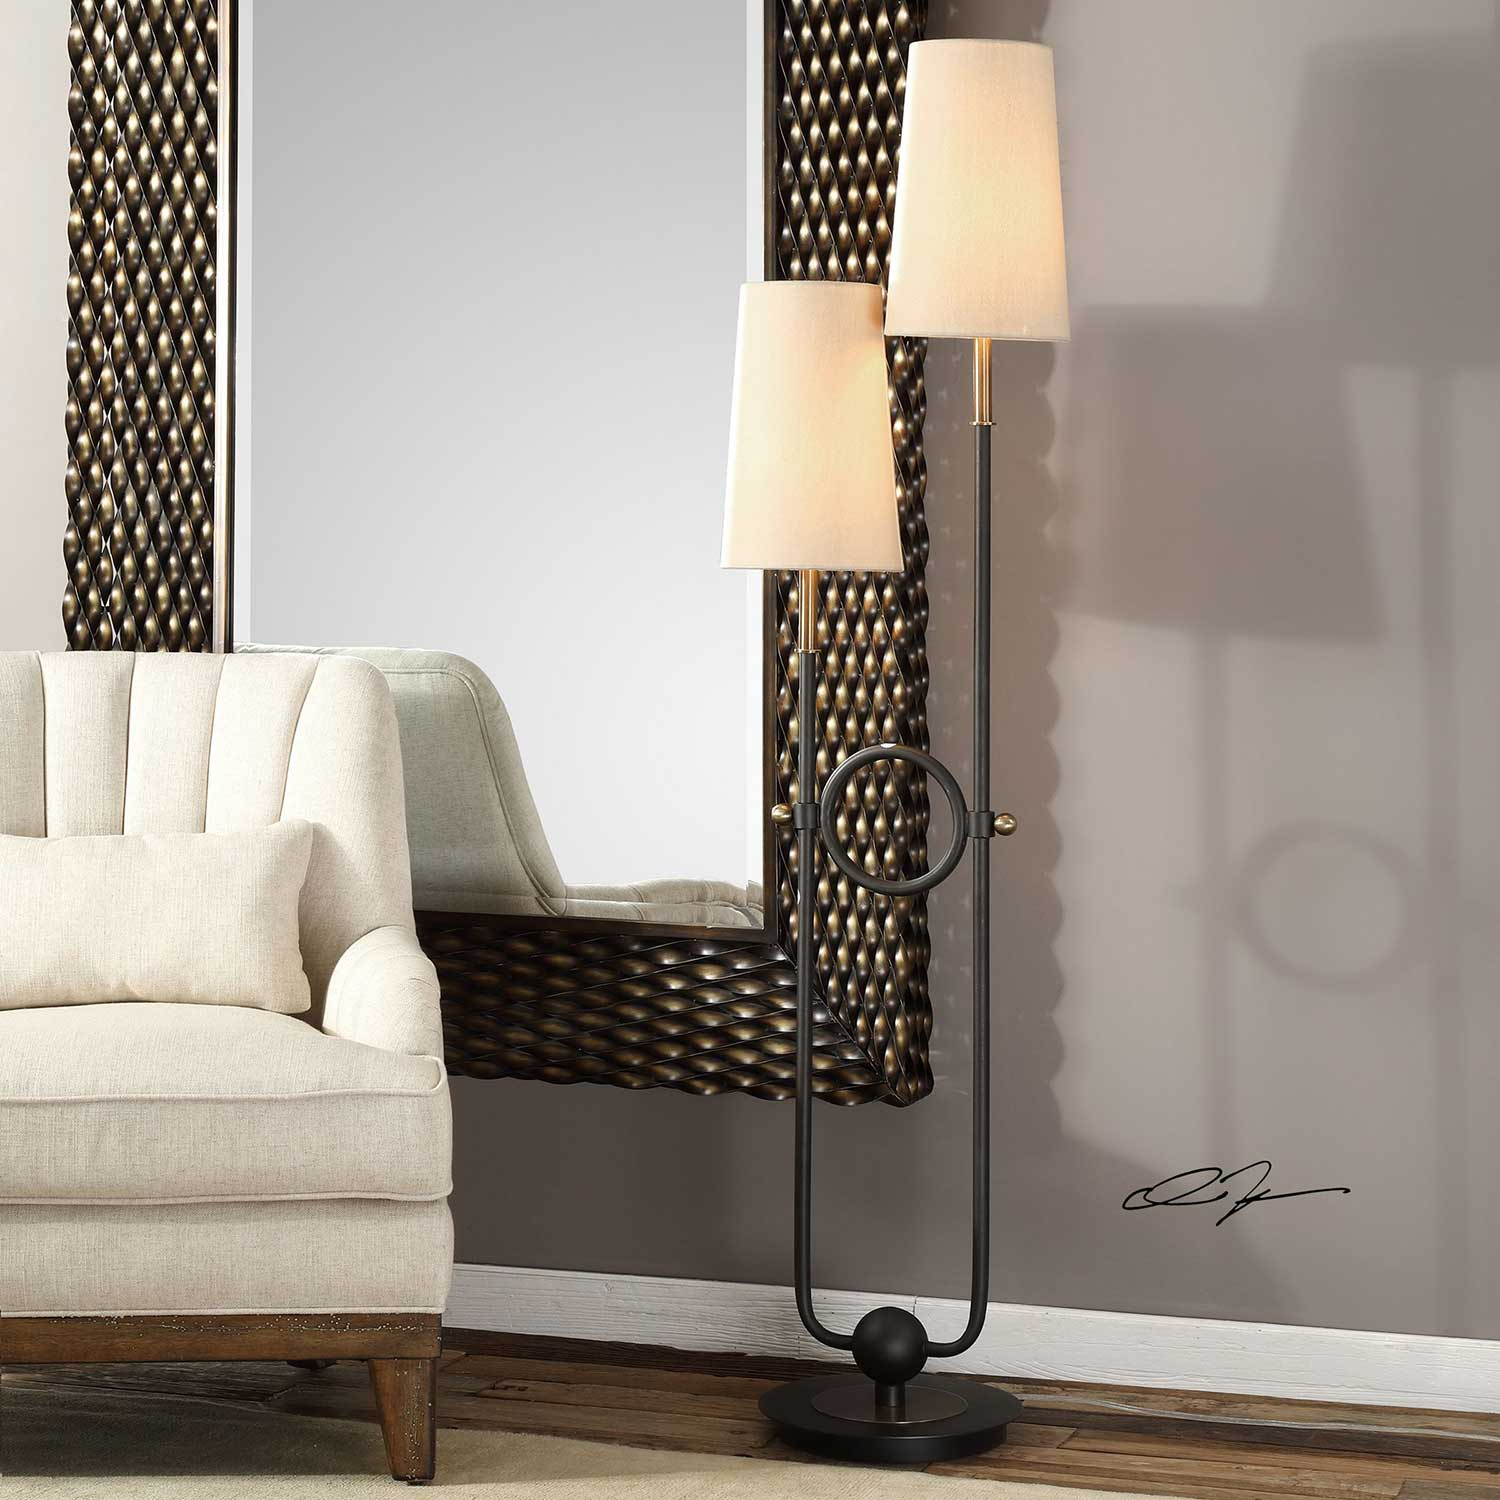 Uttermost Riano 2-Arm and 2-Light Floor Lamp